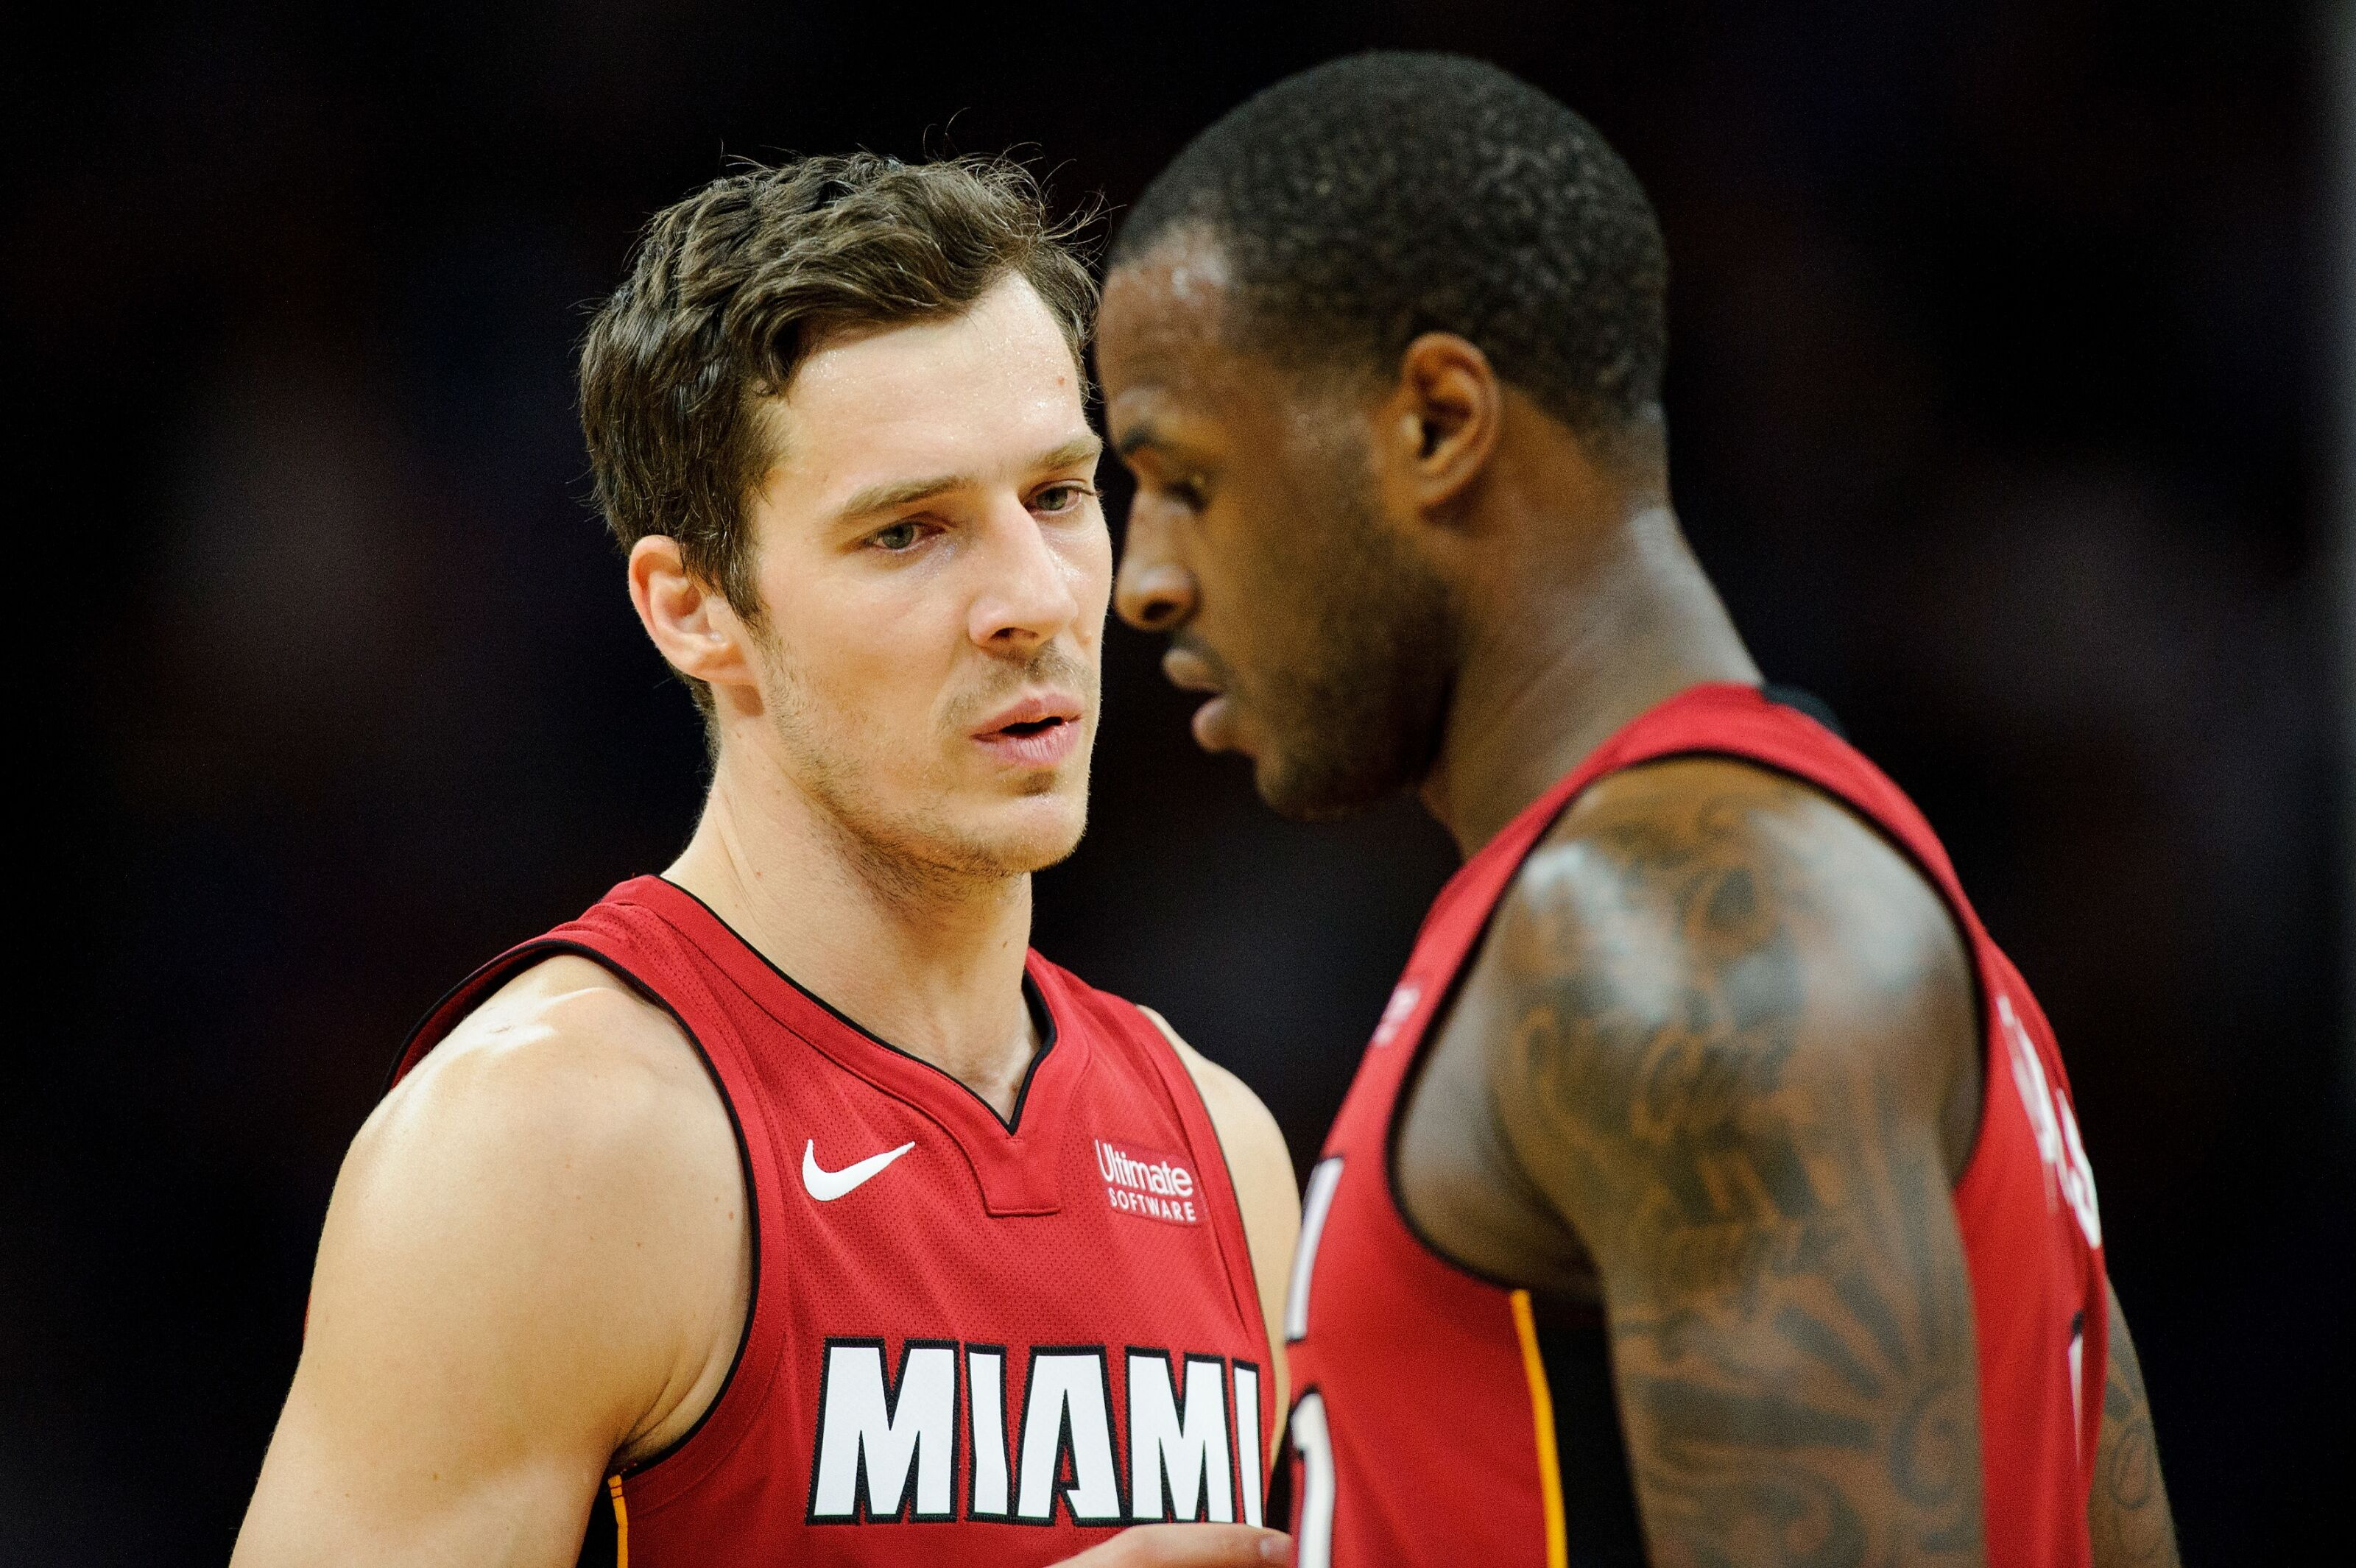 Miami Heat: Who is the better option to be first off the bench?